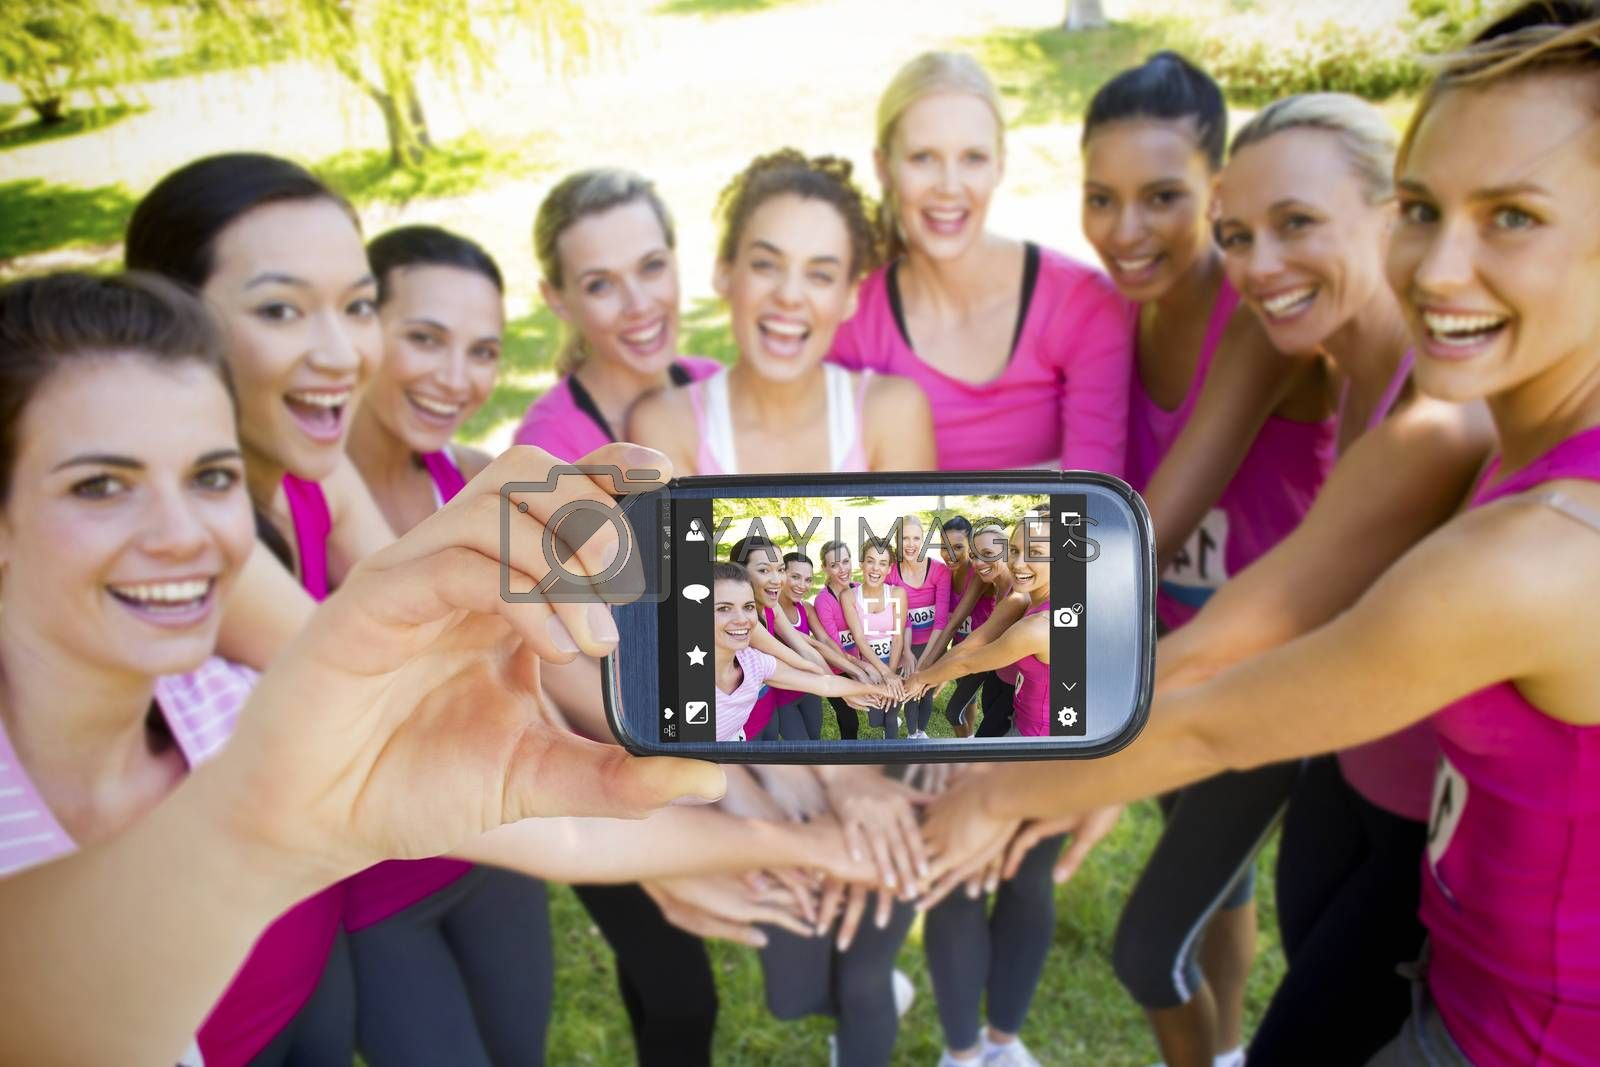 Hand holding smartphone showing against smiling women running for breast cancer awareness